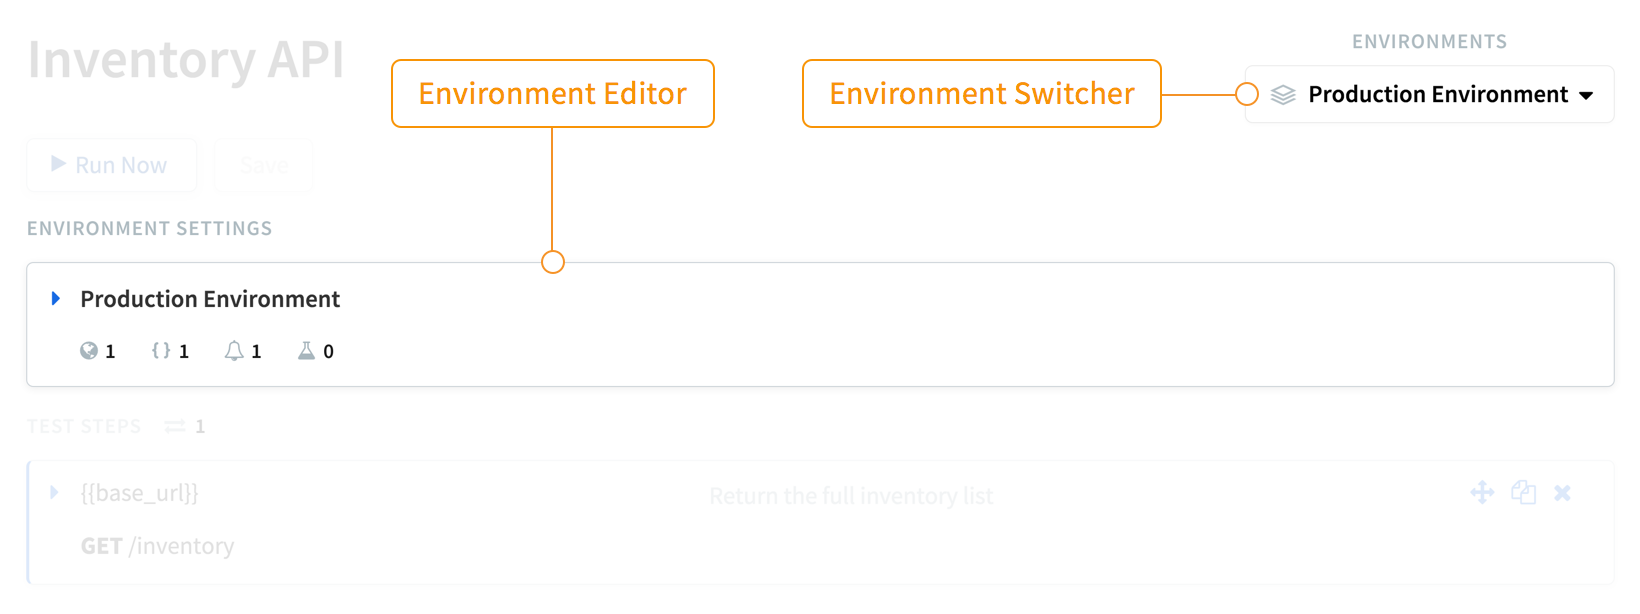 The user interface for switching and editing environments.